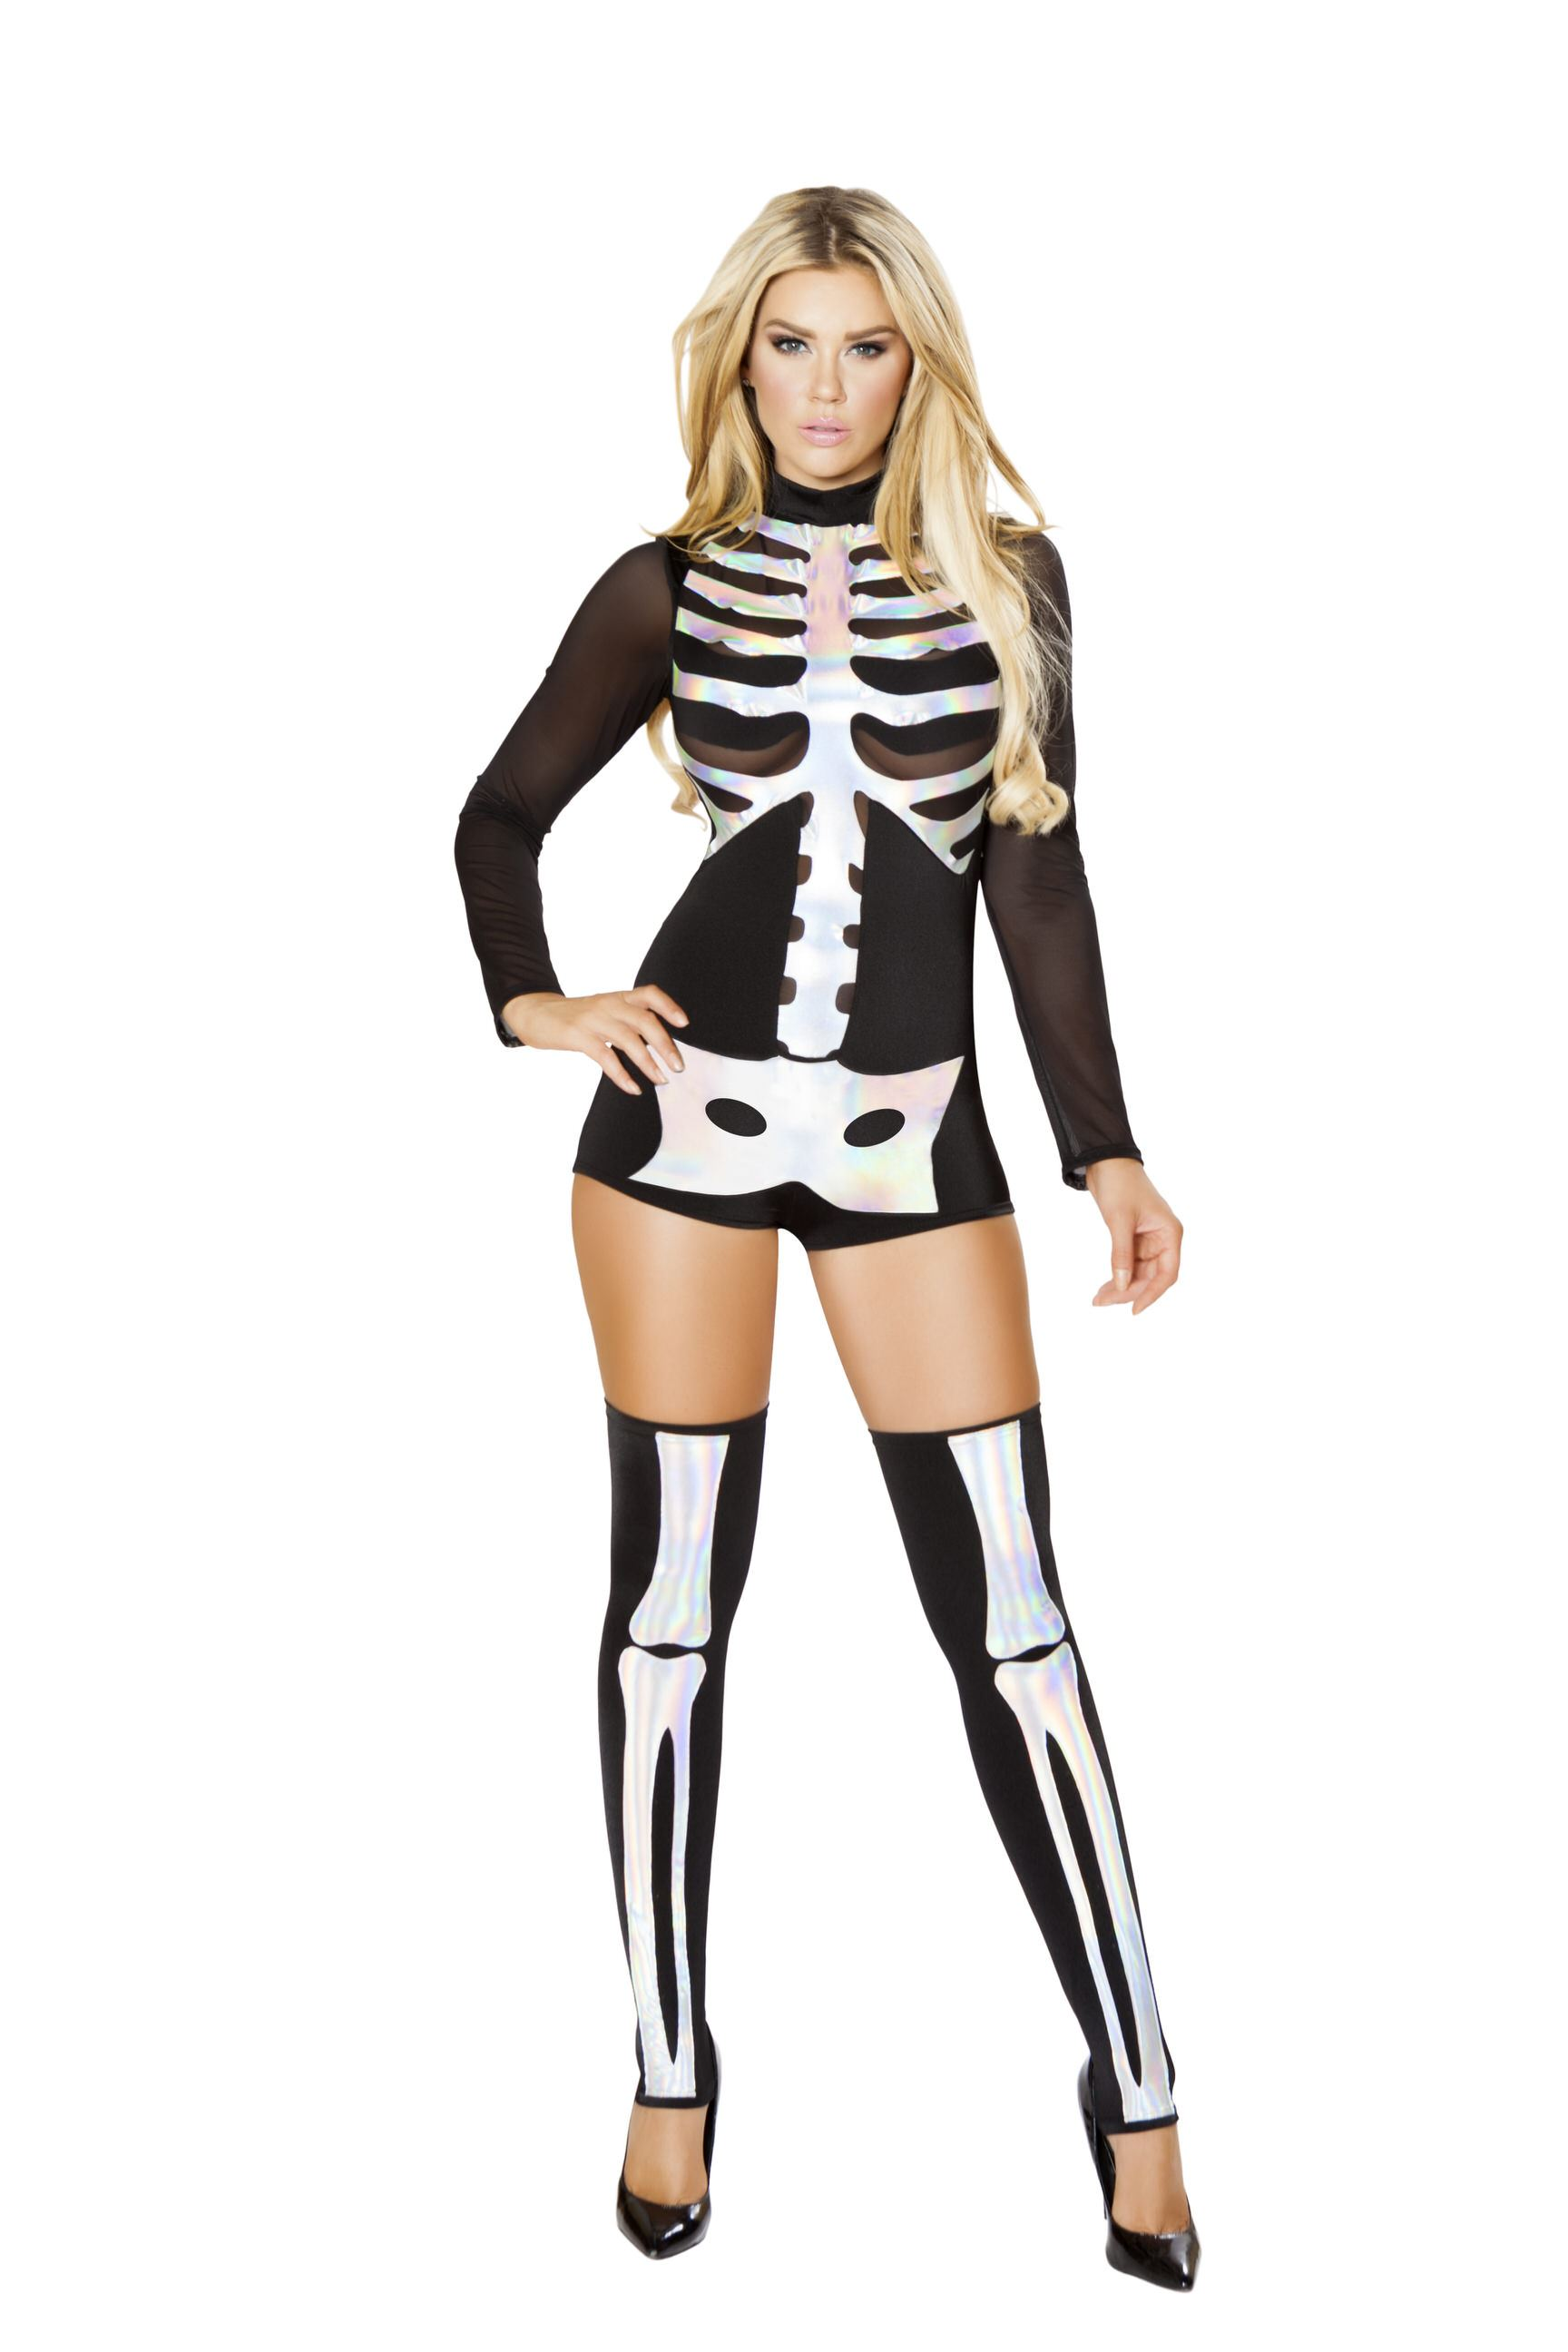 Adult Jackie Skeleton Woman Costume 71 99 The Costume